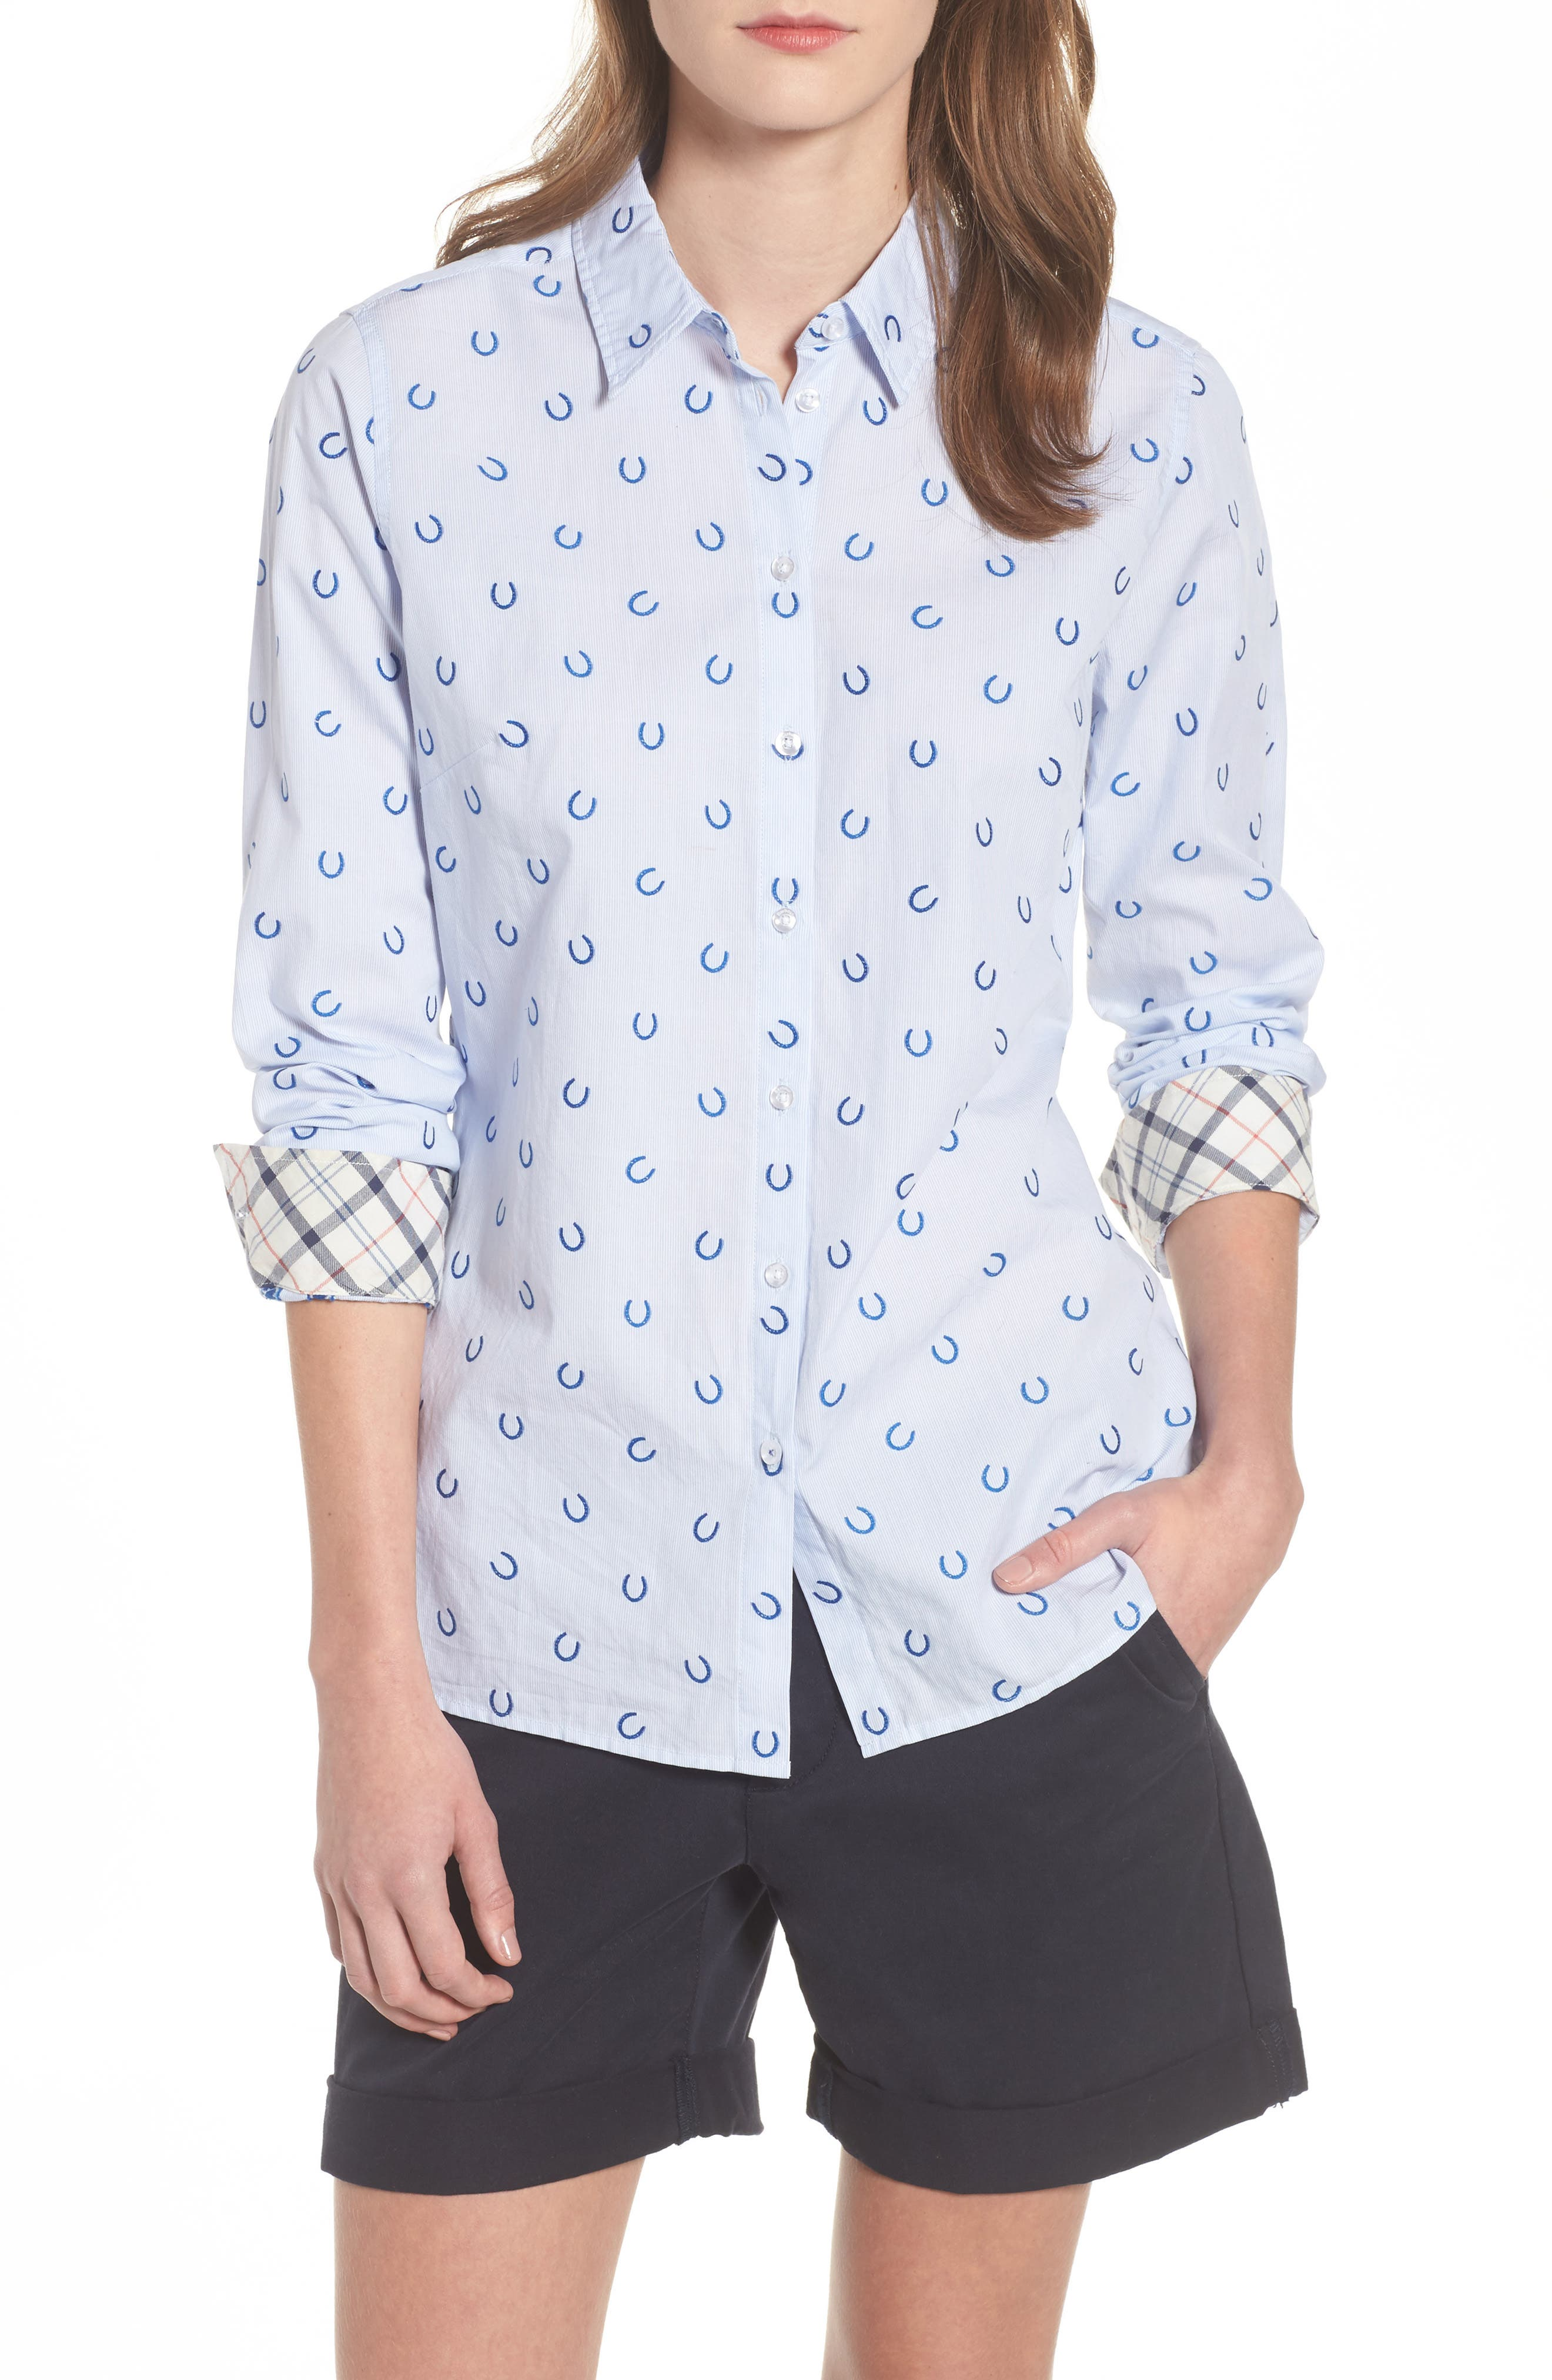 Daisyhill Regular Fit Shirt,                             Main thumbnail 1, color,                             450